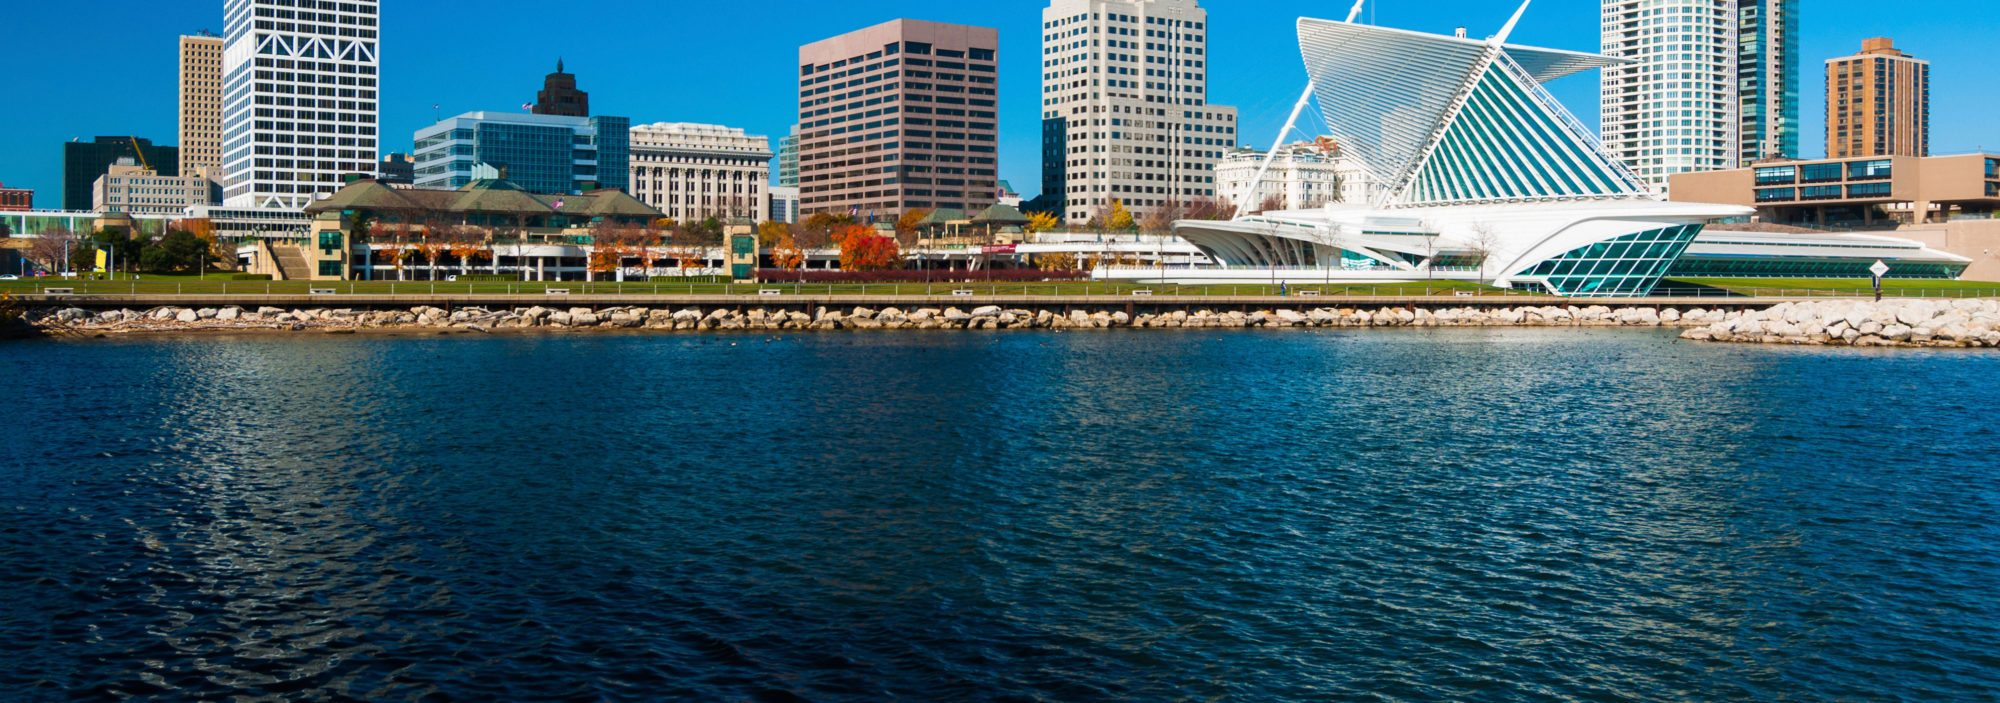 milwaukee-skyline-waterfront-view